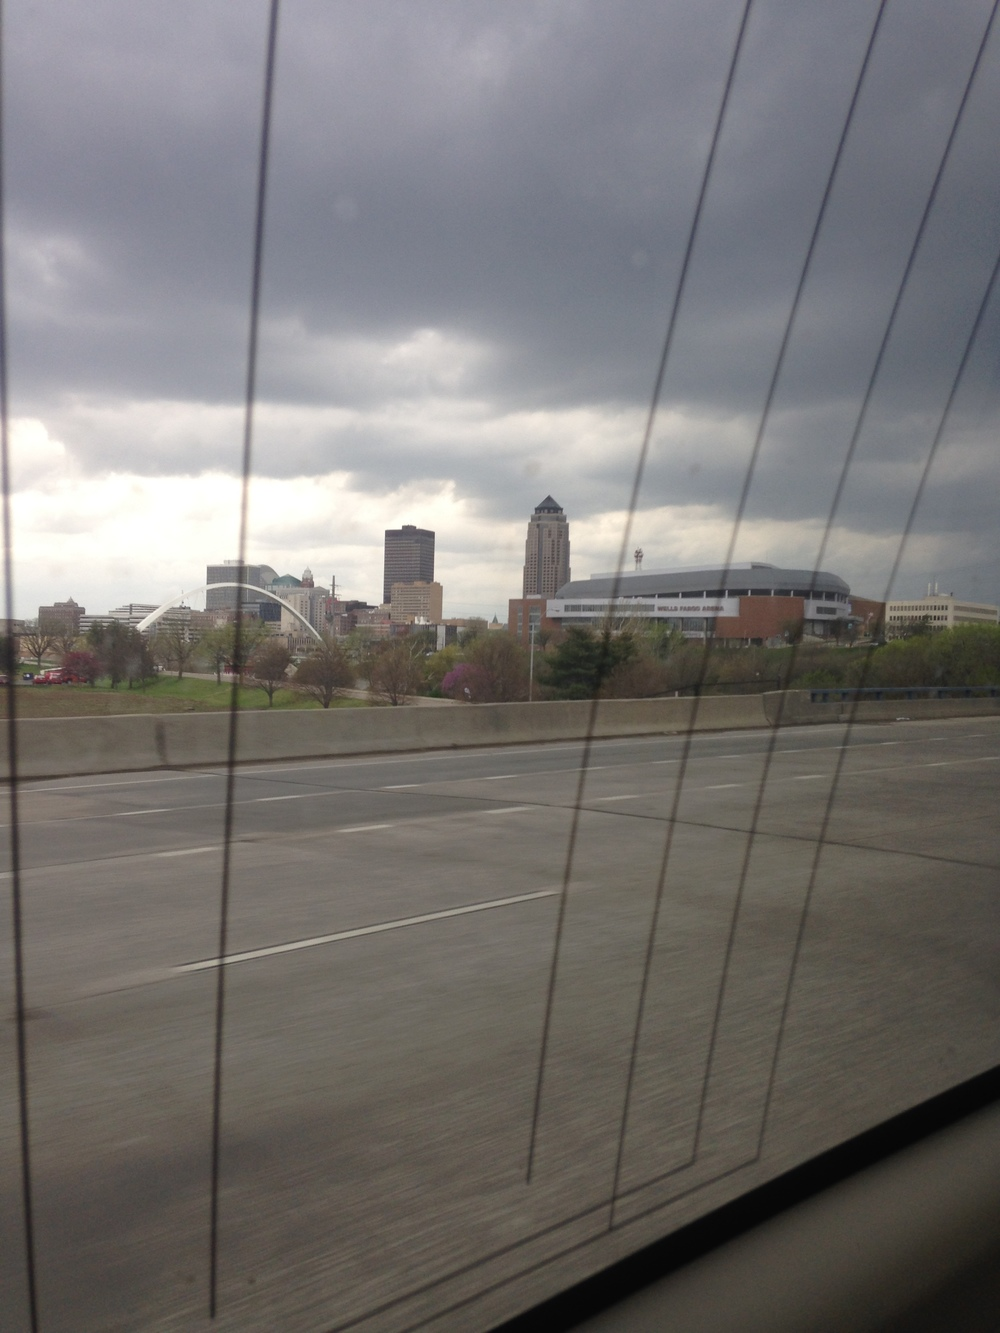 I love Des Moines and Wells Fargo Arena, I have yet to walk the nearby bridge but I will